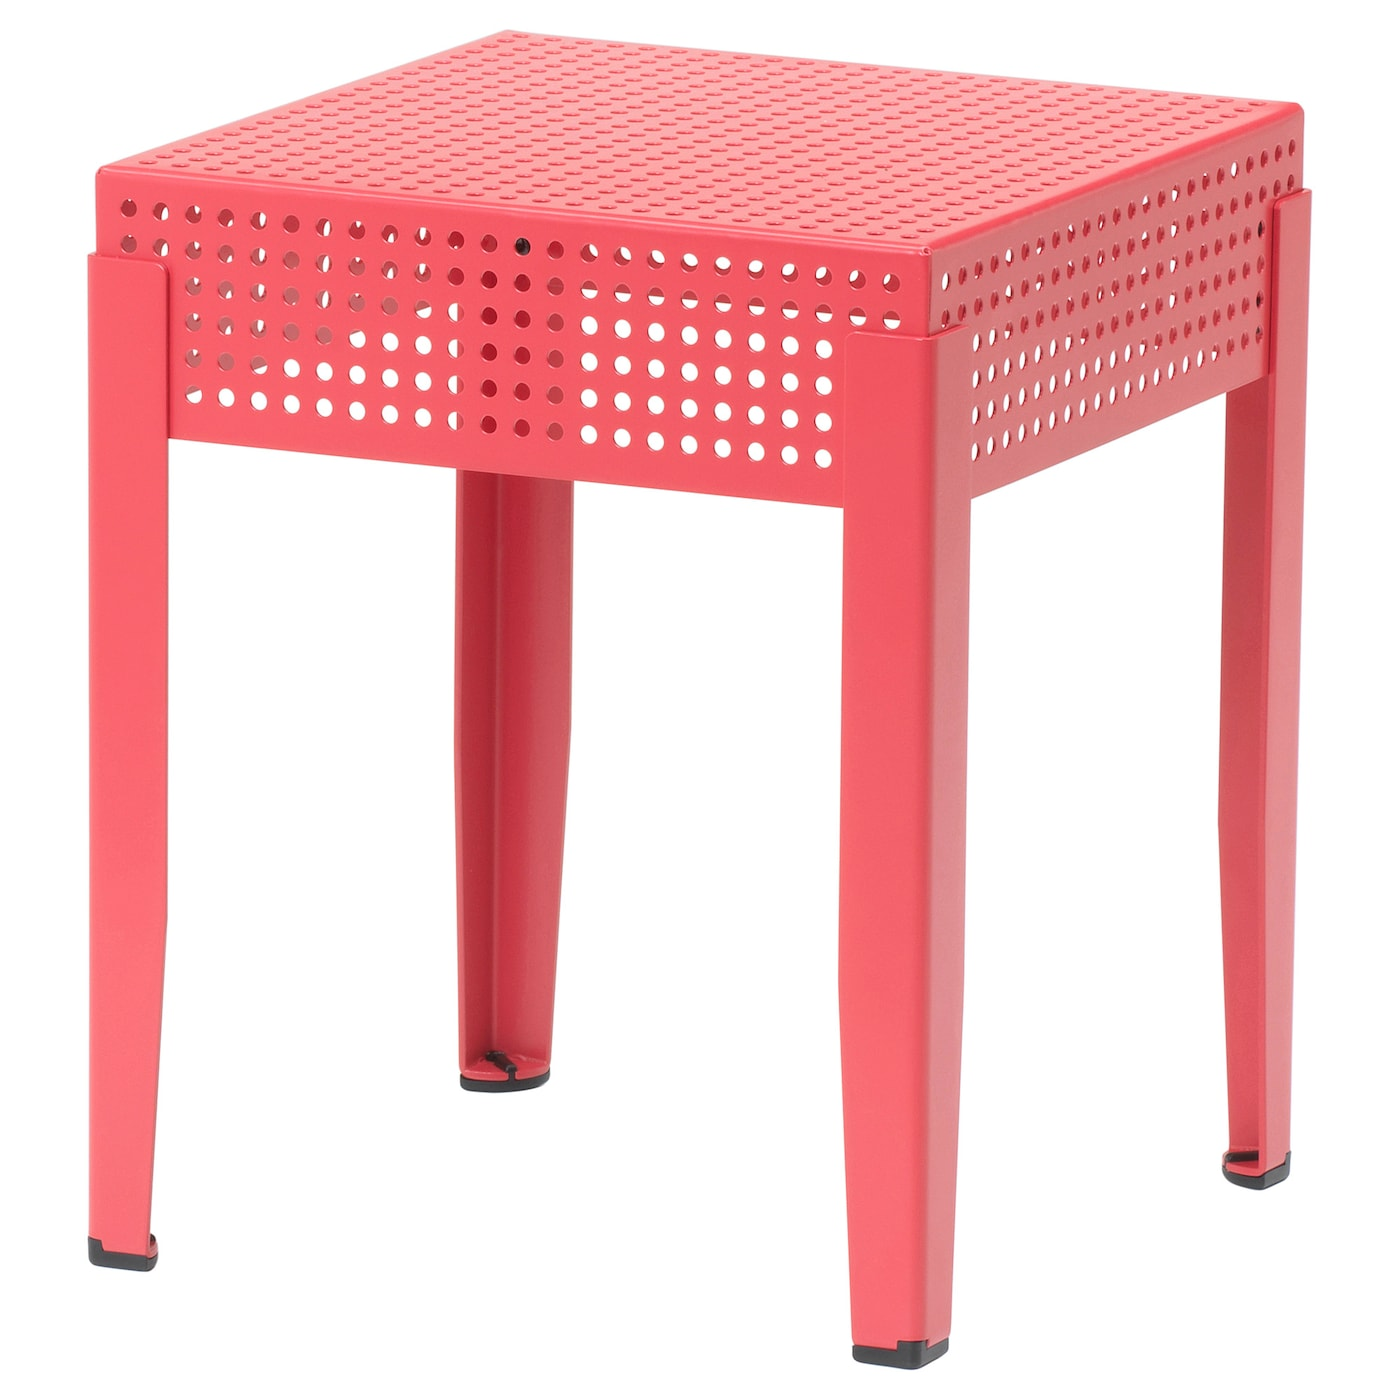 IKEA SJÄLVSTÄNDIG stool, in/outdoor Suitable for both indoor and outdoor use.